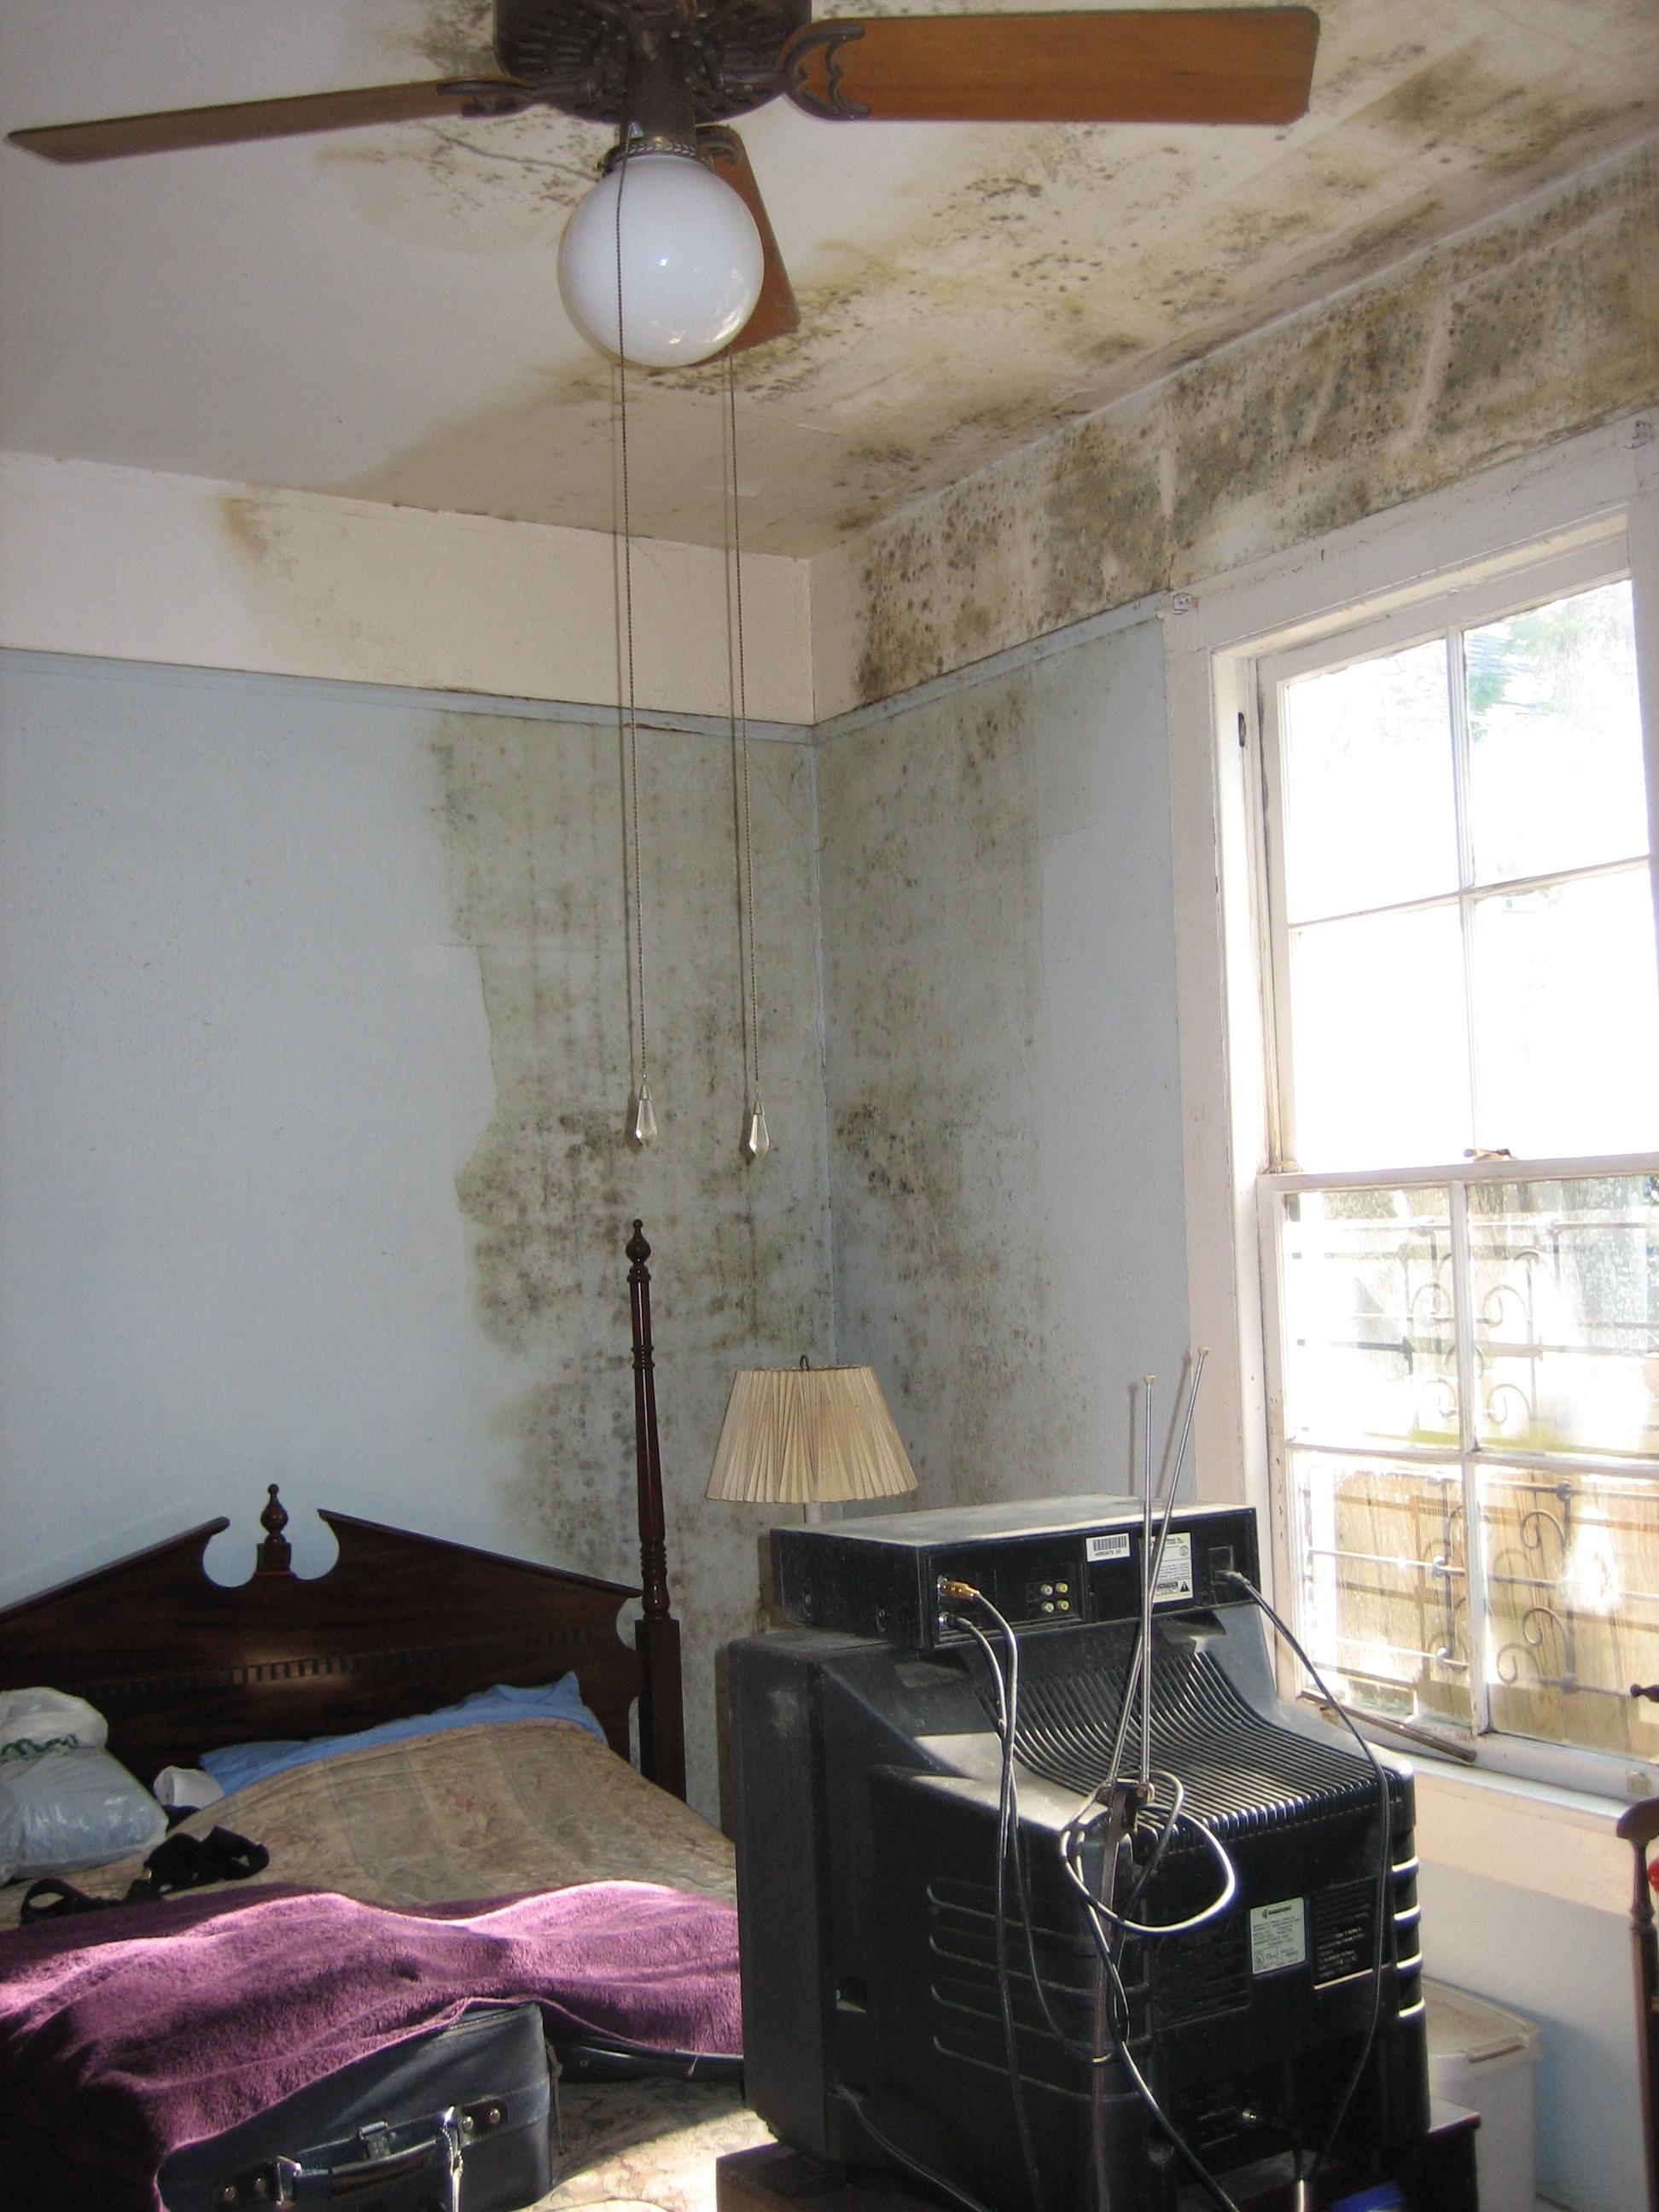 Bedroom with mold on wall and ceiling. Indoor mold   Wikipedia